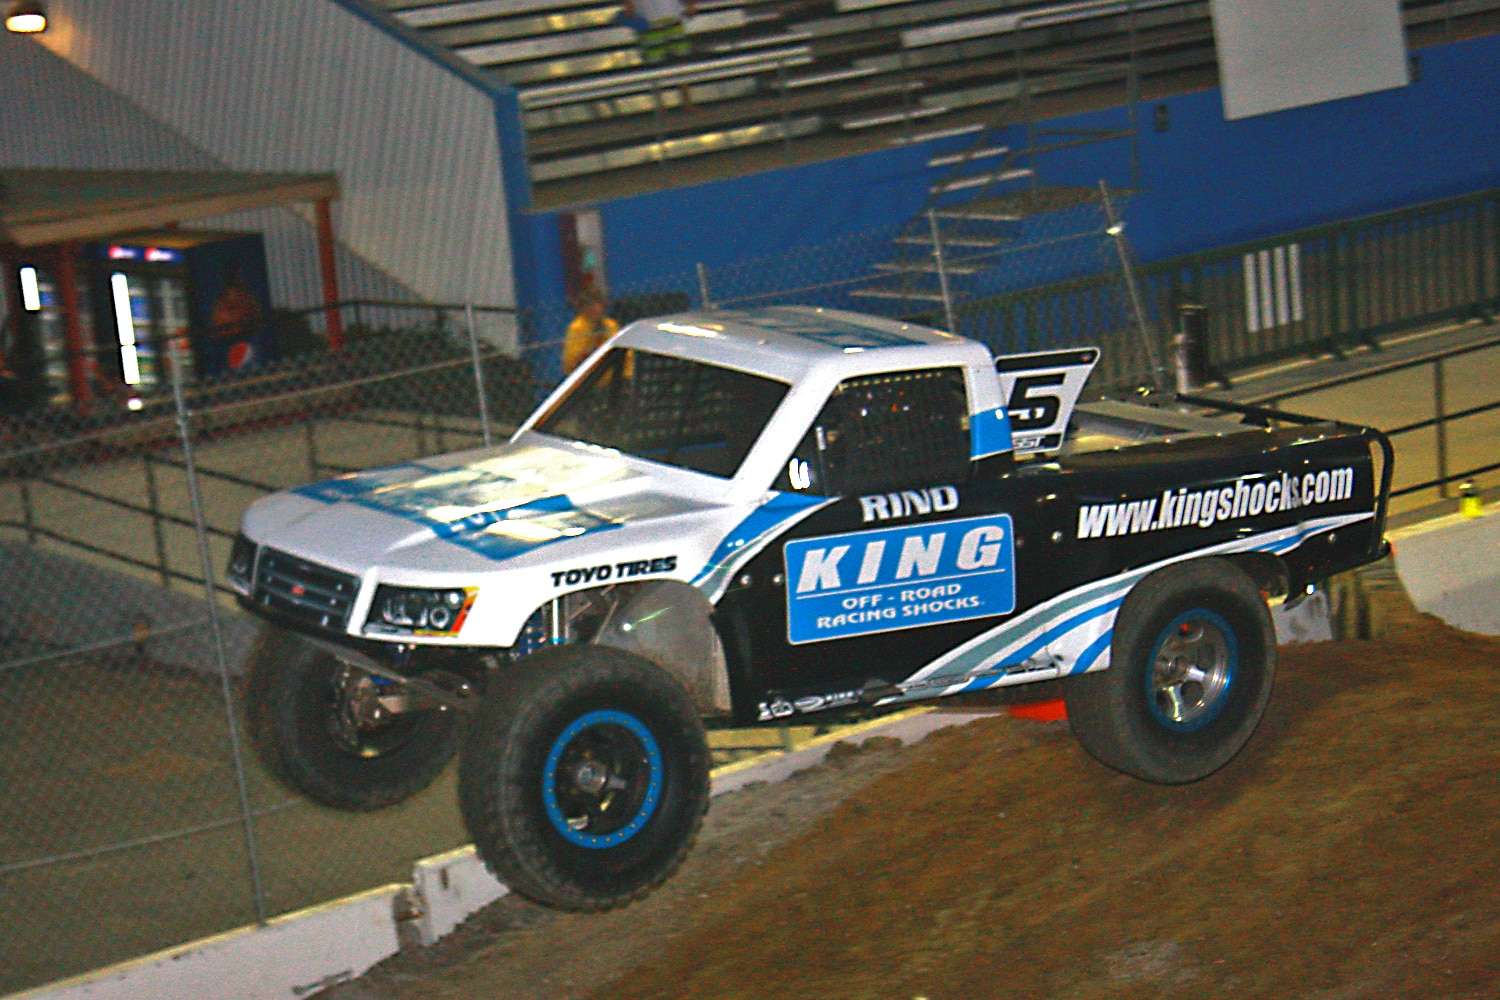 Off Road Race Truck   51  King Shocks SST Truck